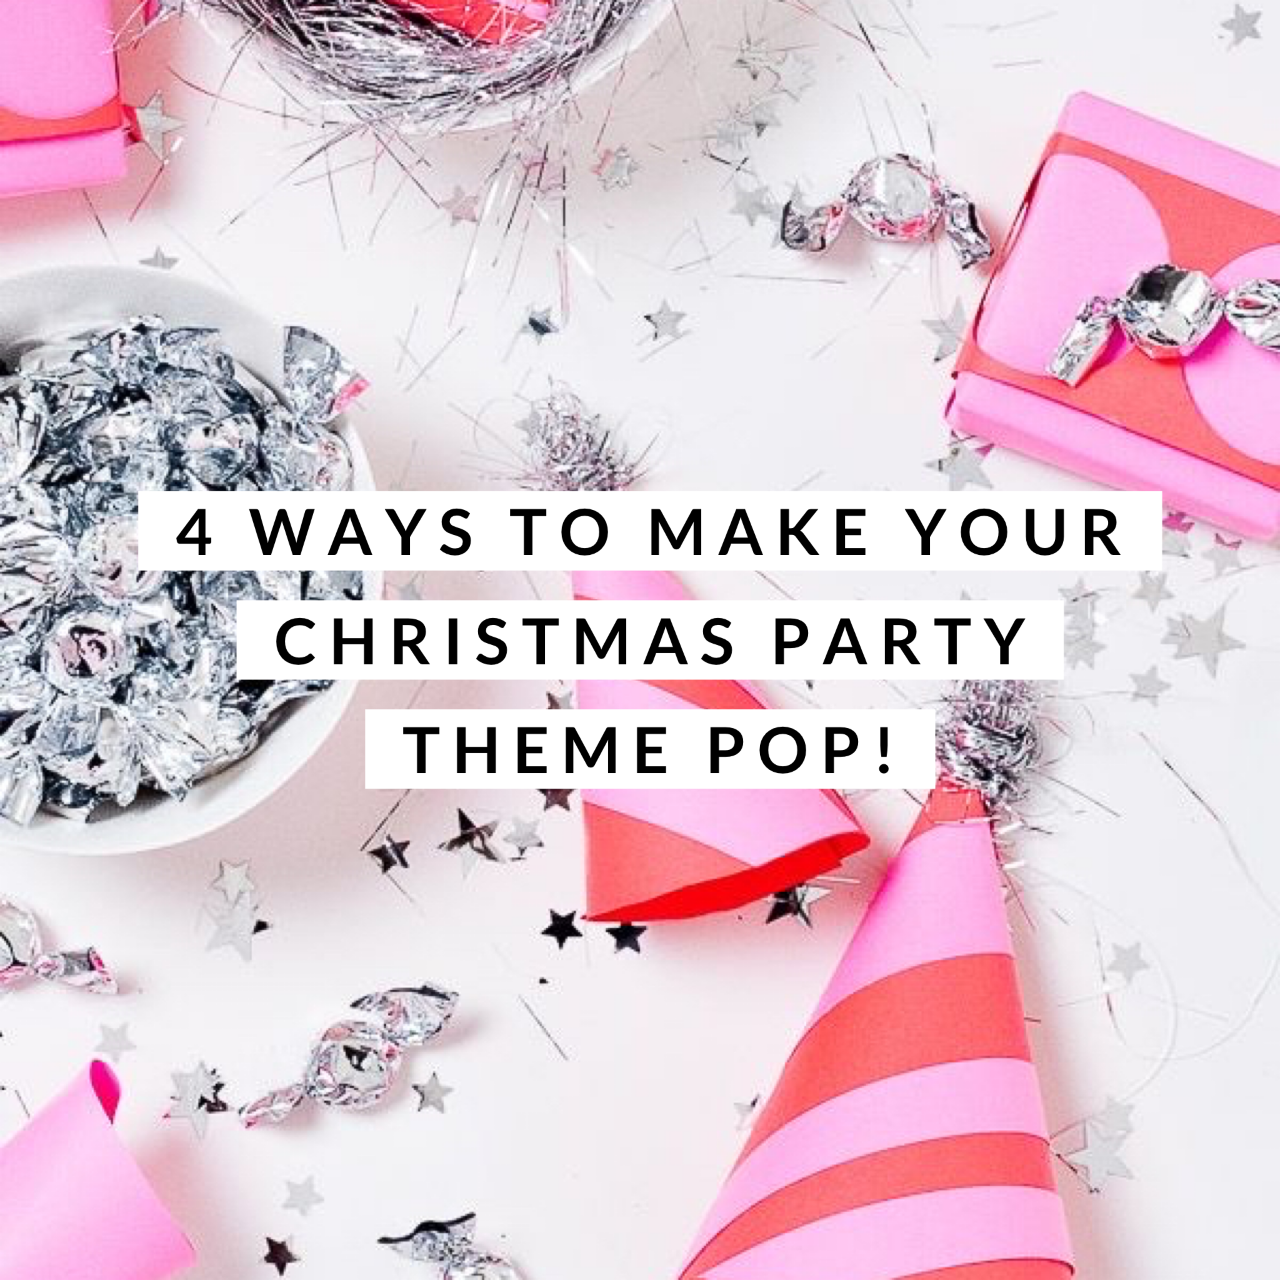 4 ways to make your Christmas party theme pop!